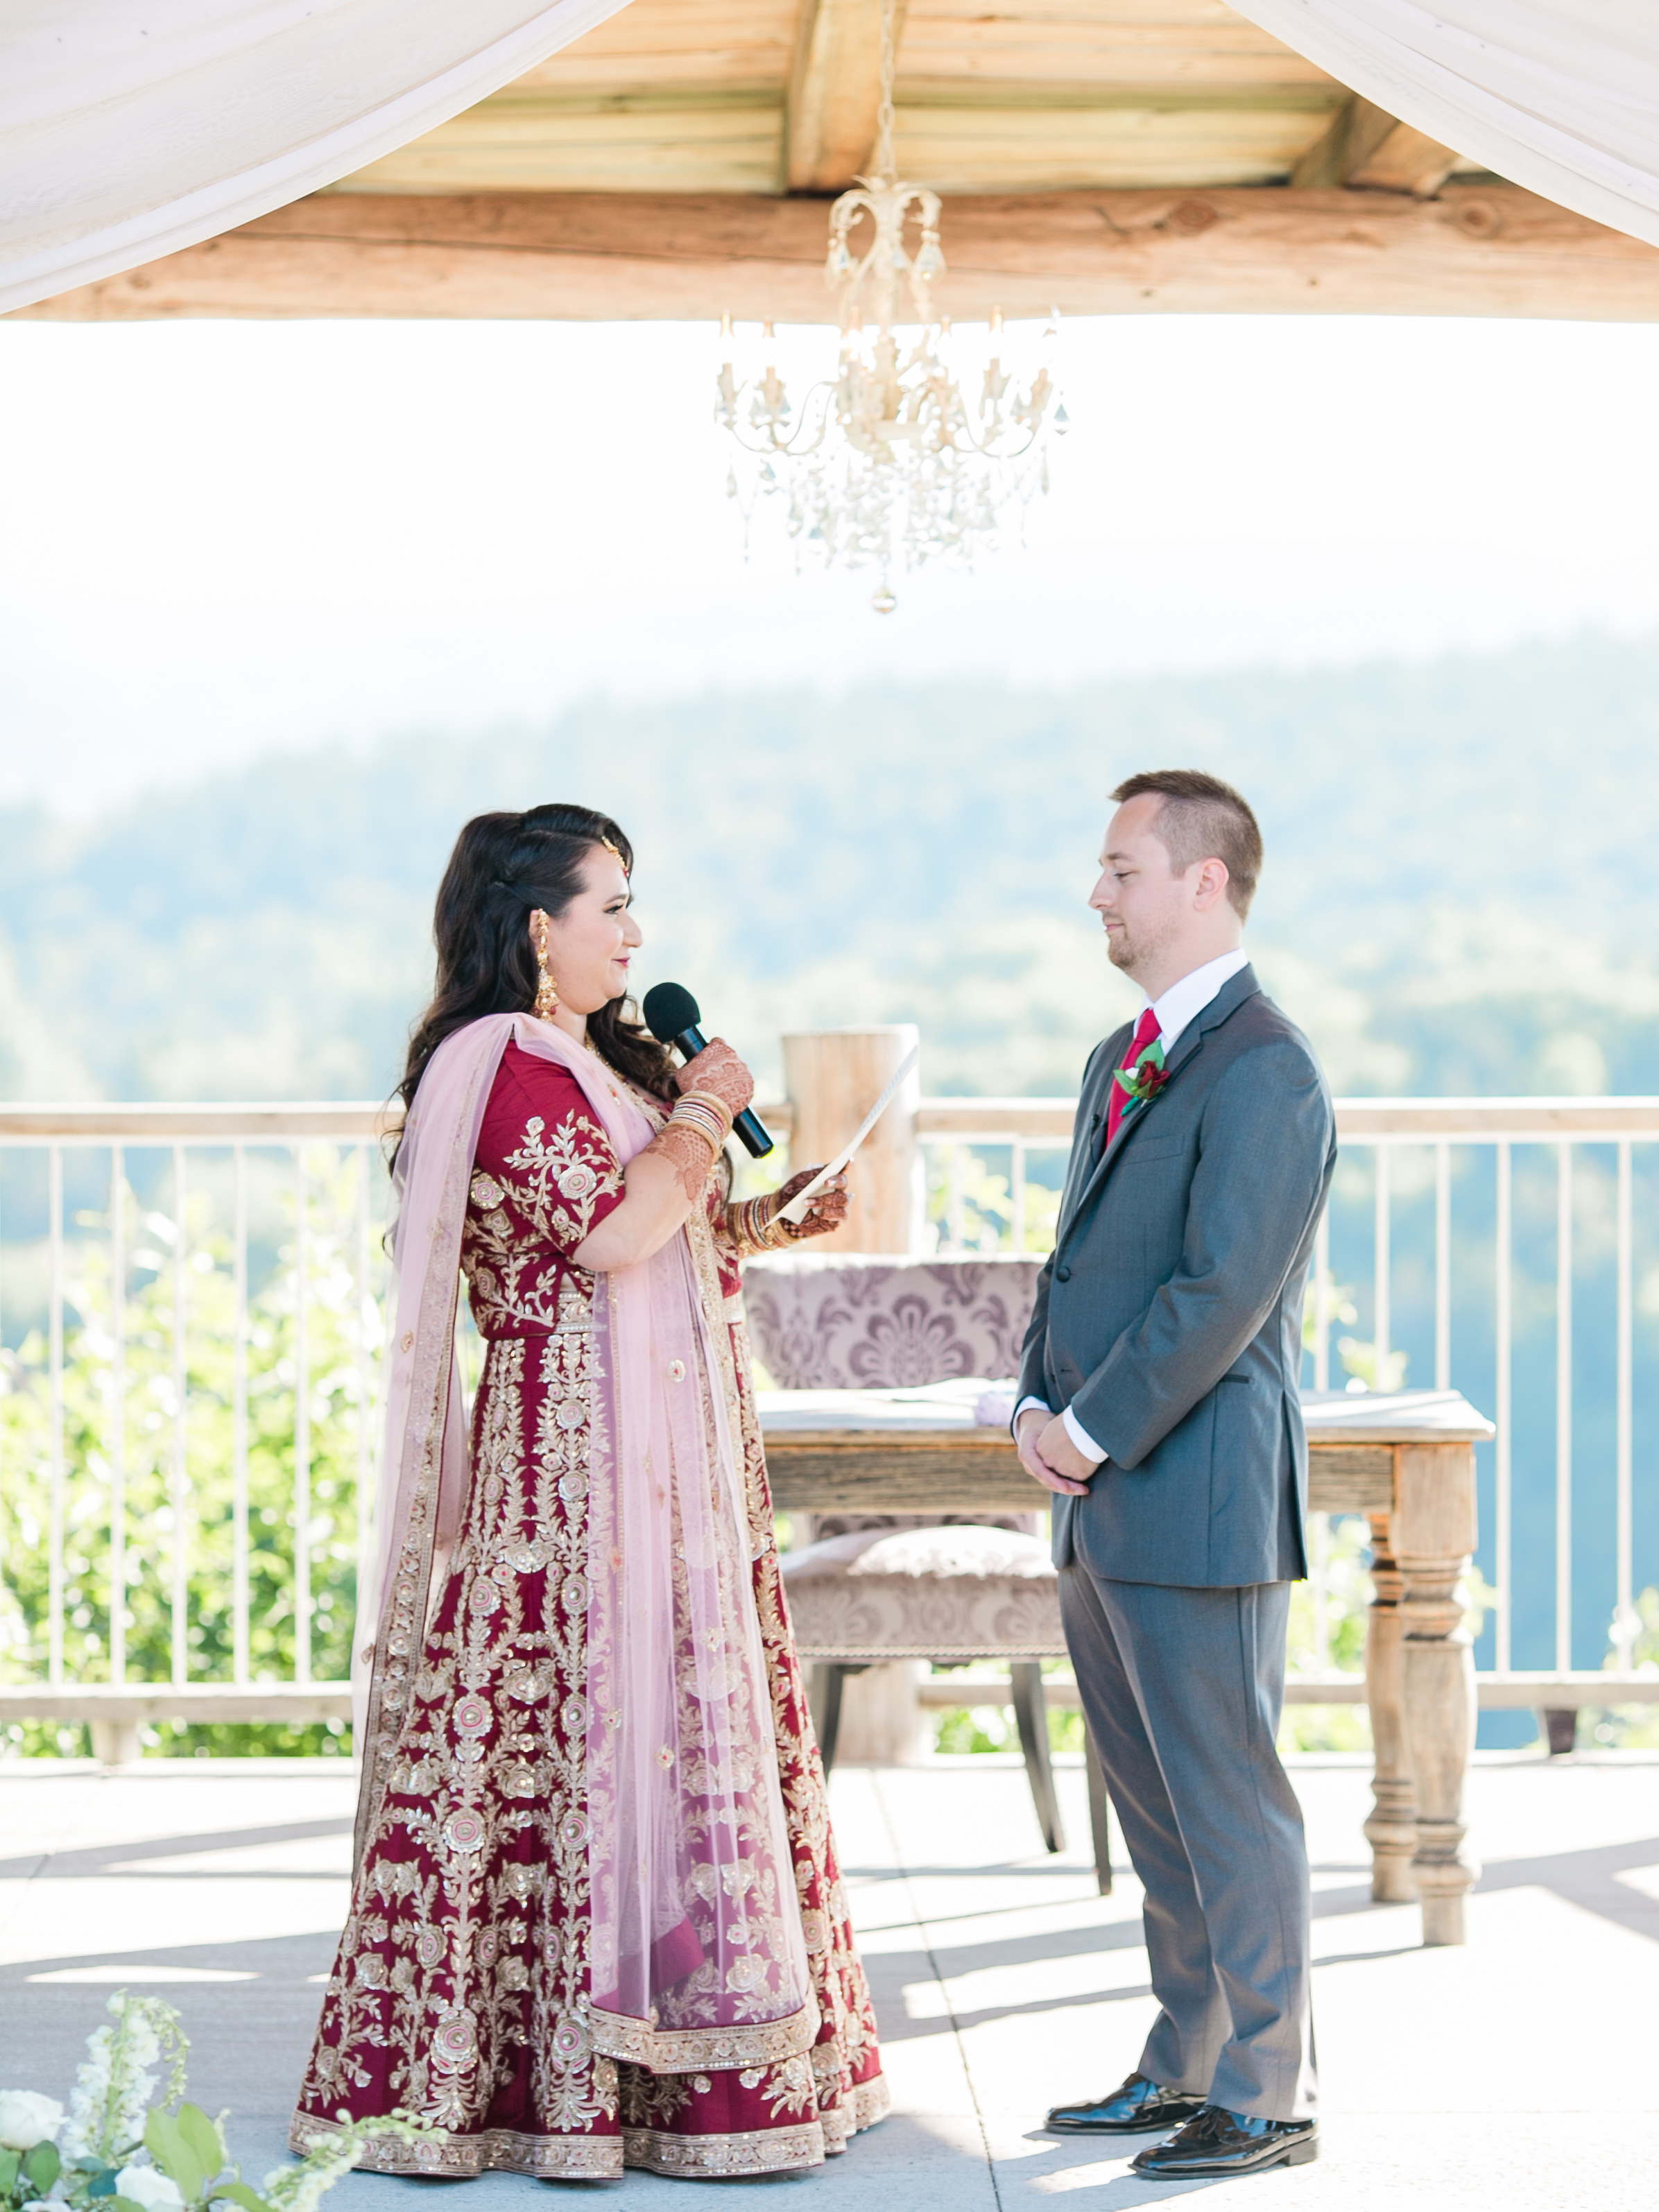 LeBelvedere_MountainTopWedding_StephanieMasonPhotography-129.jpg